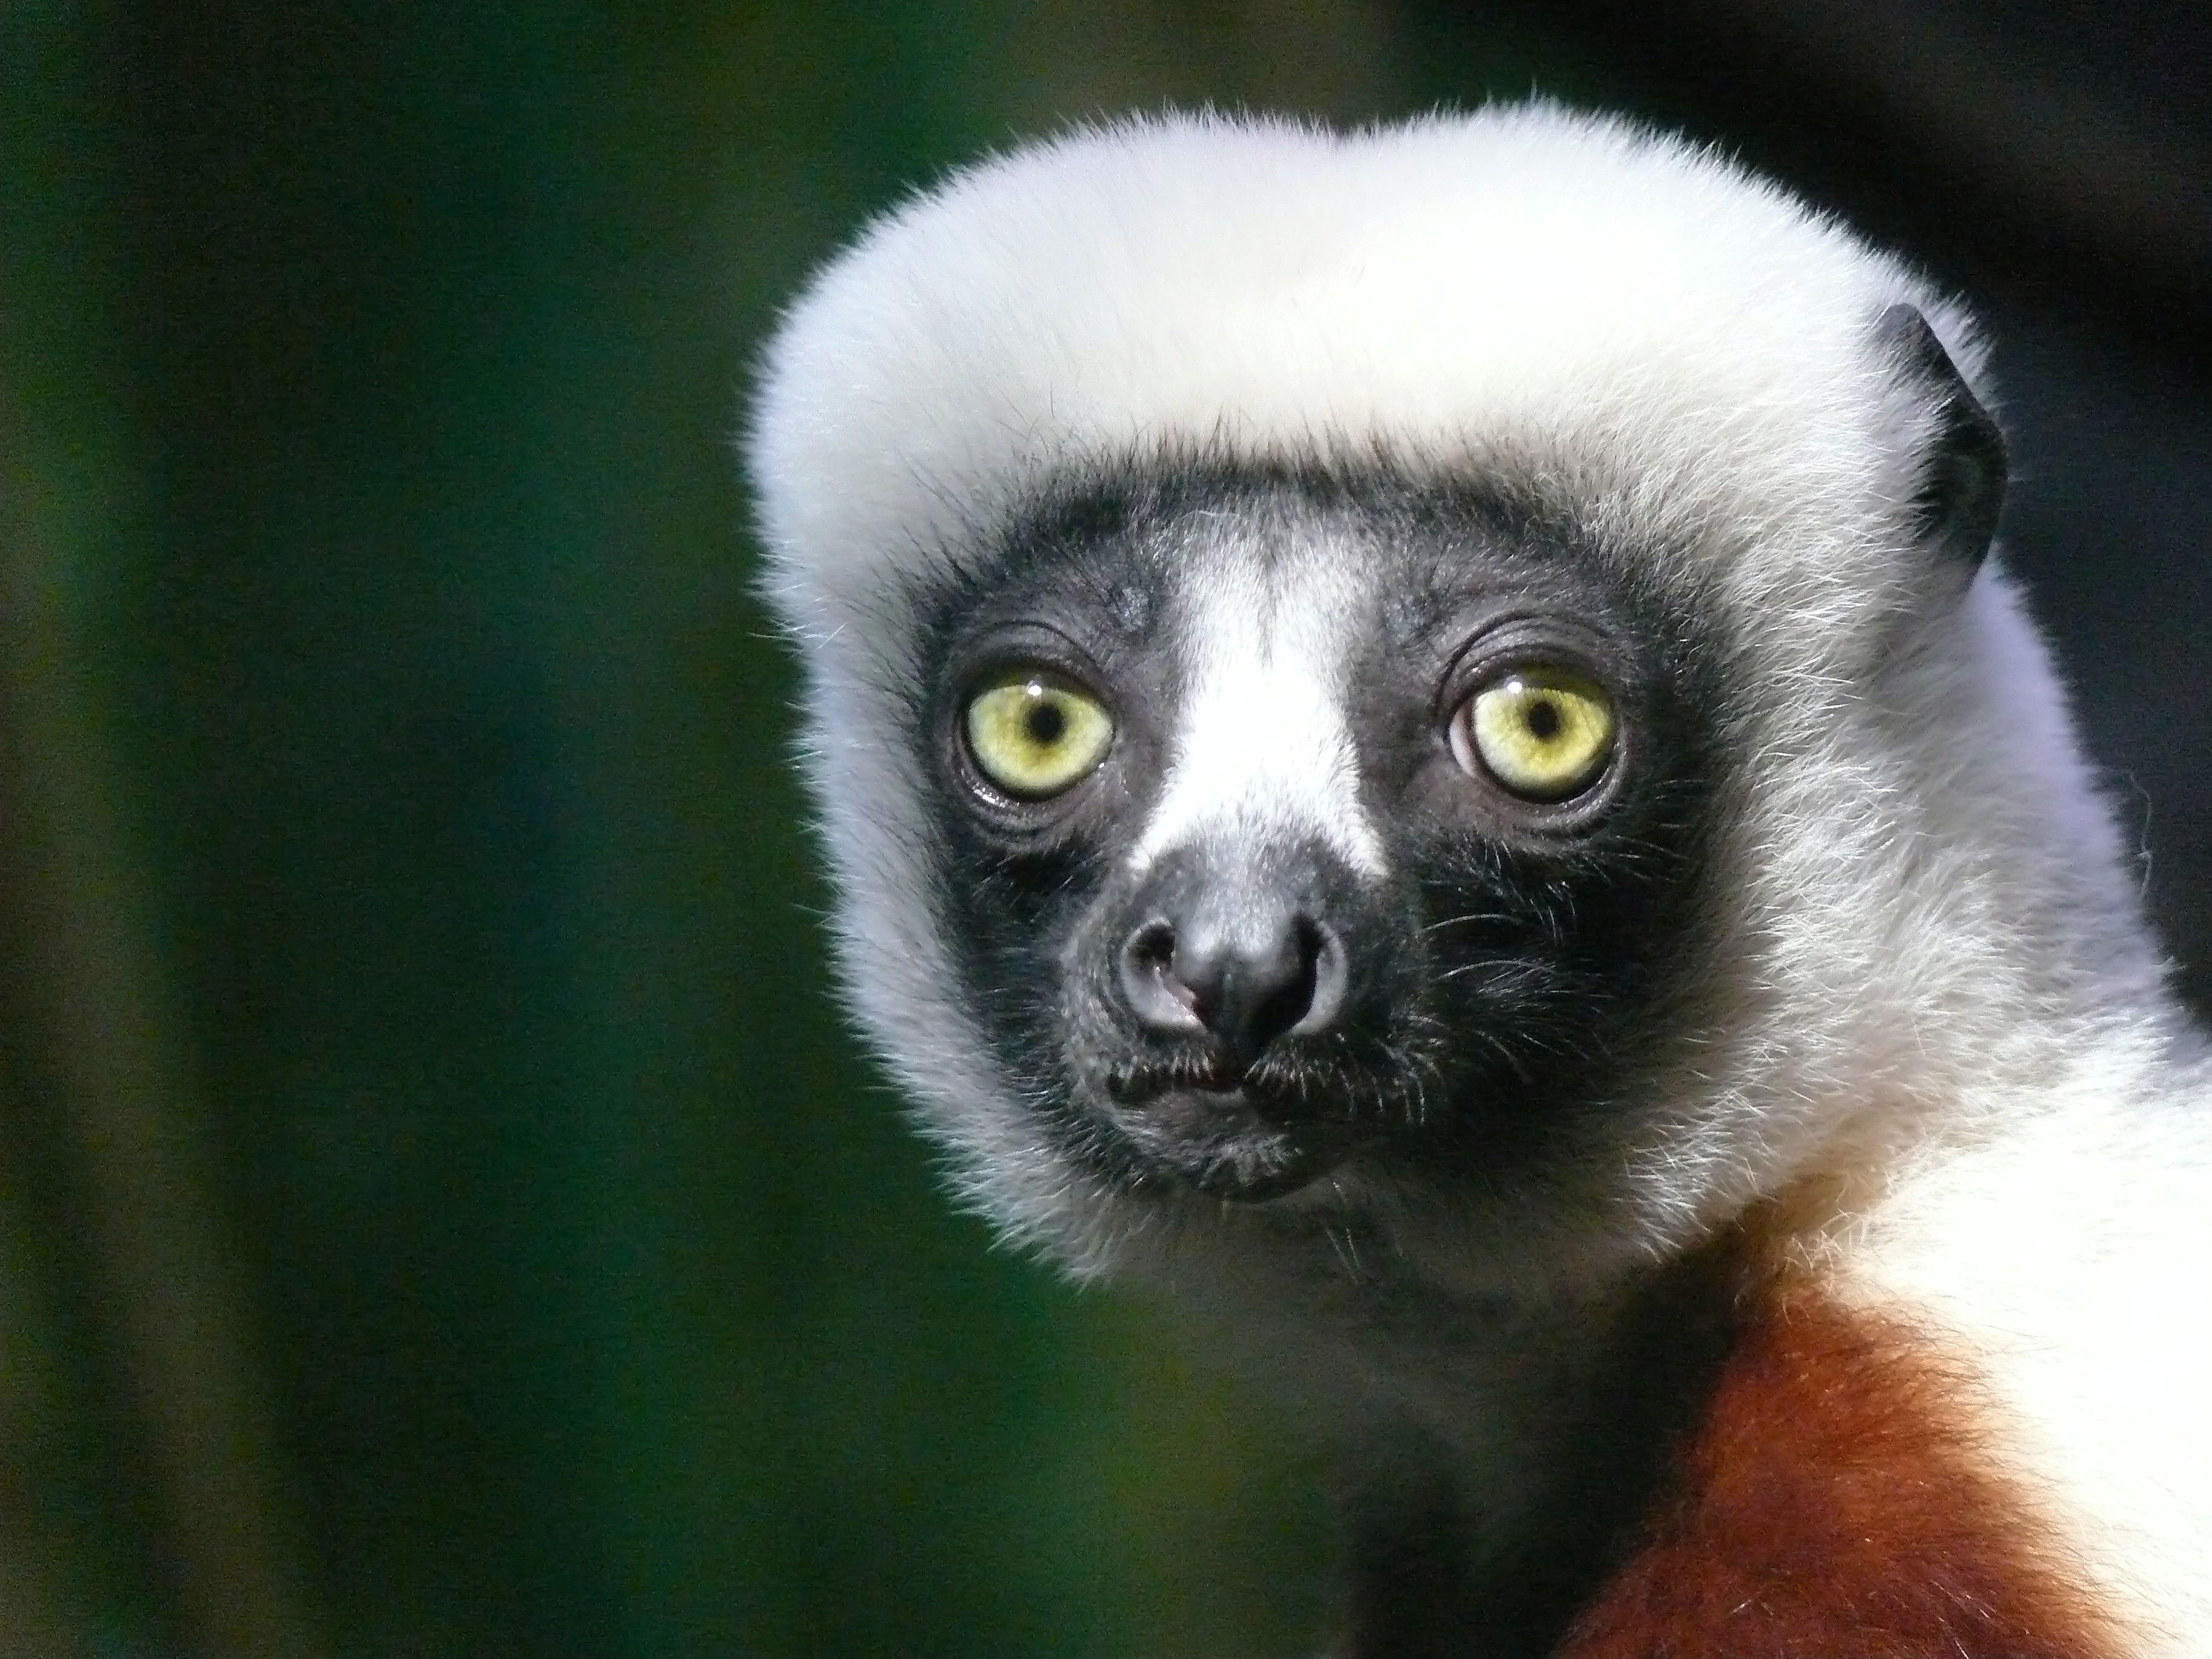 Macro of a lemur caught in the light with a dark background